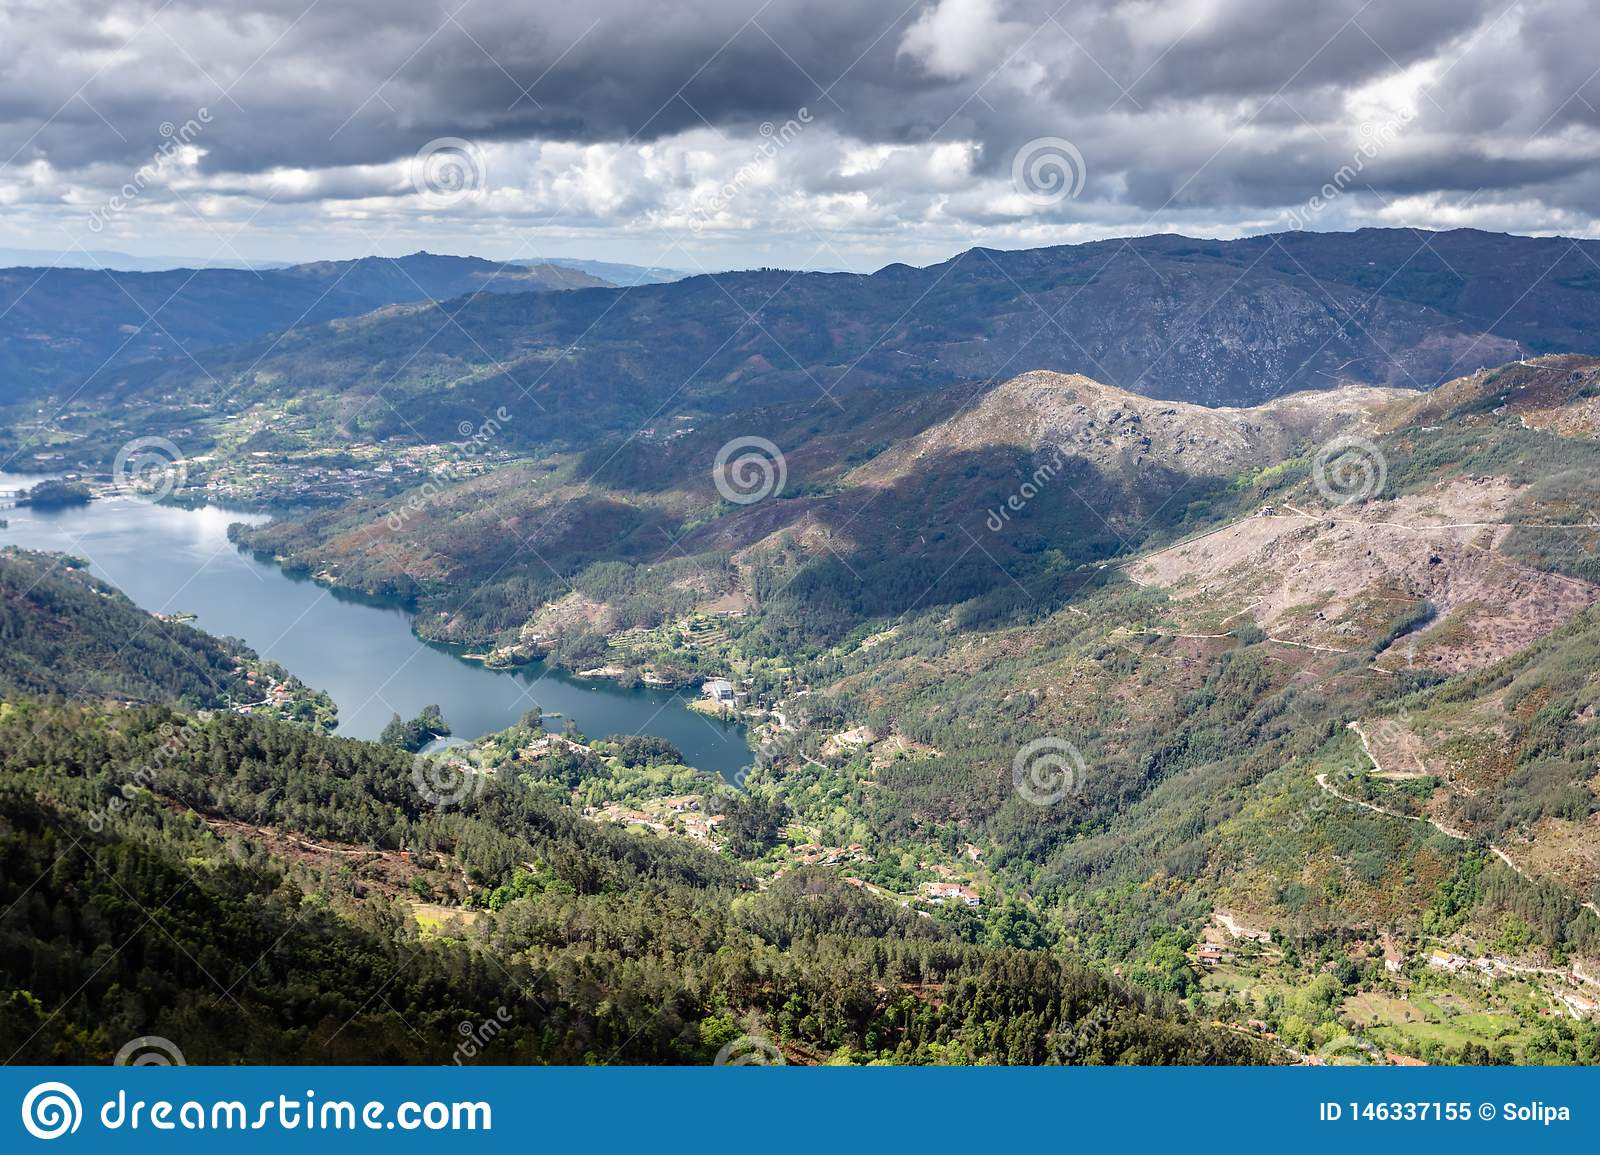 Scenic view of Cavado river and Peneda Geres National Park in northern Portugal